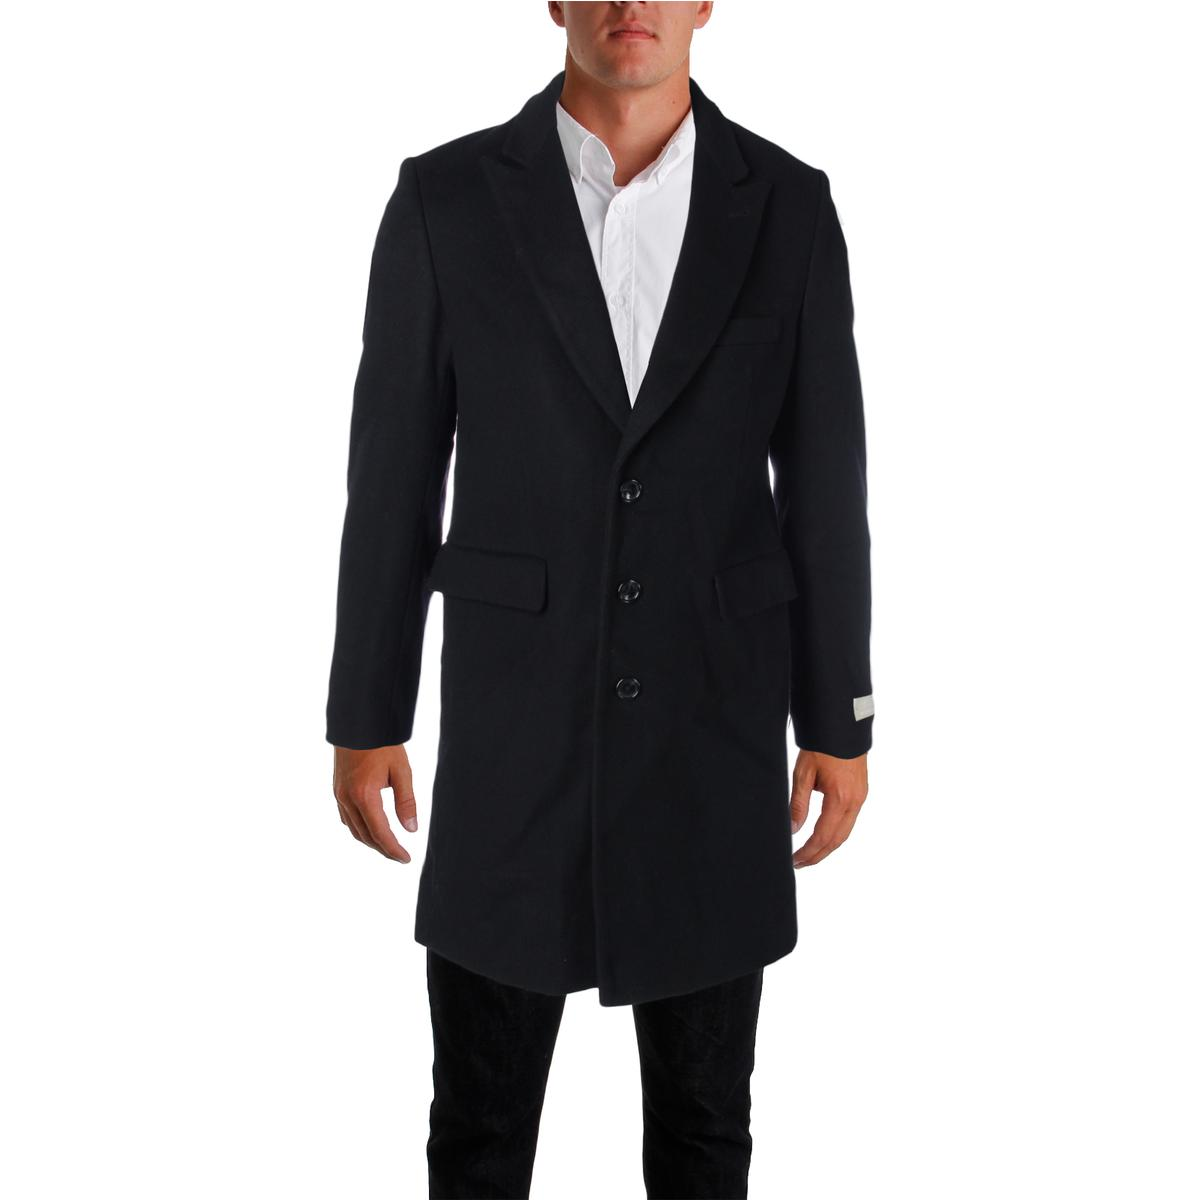 Michael Kors Mens Wool Blend Slim Fit Pea Coat